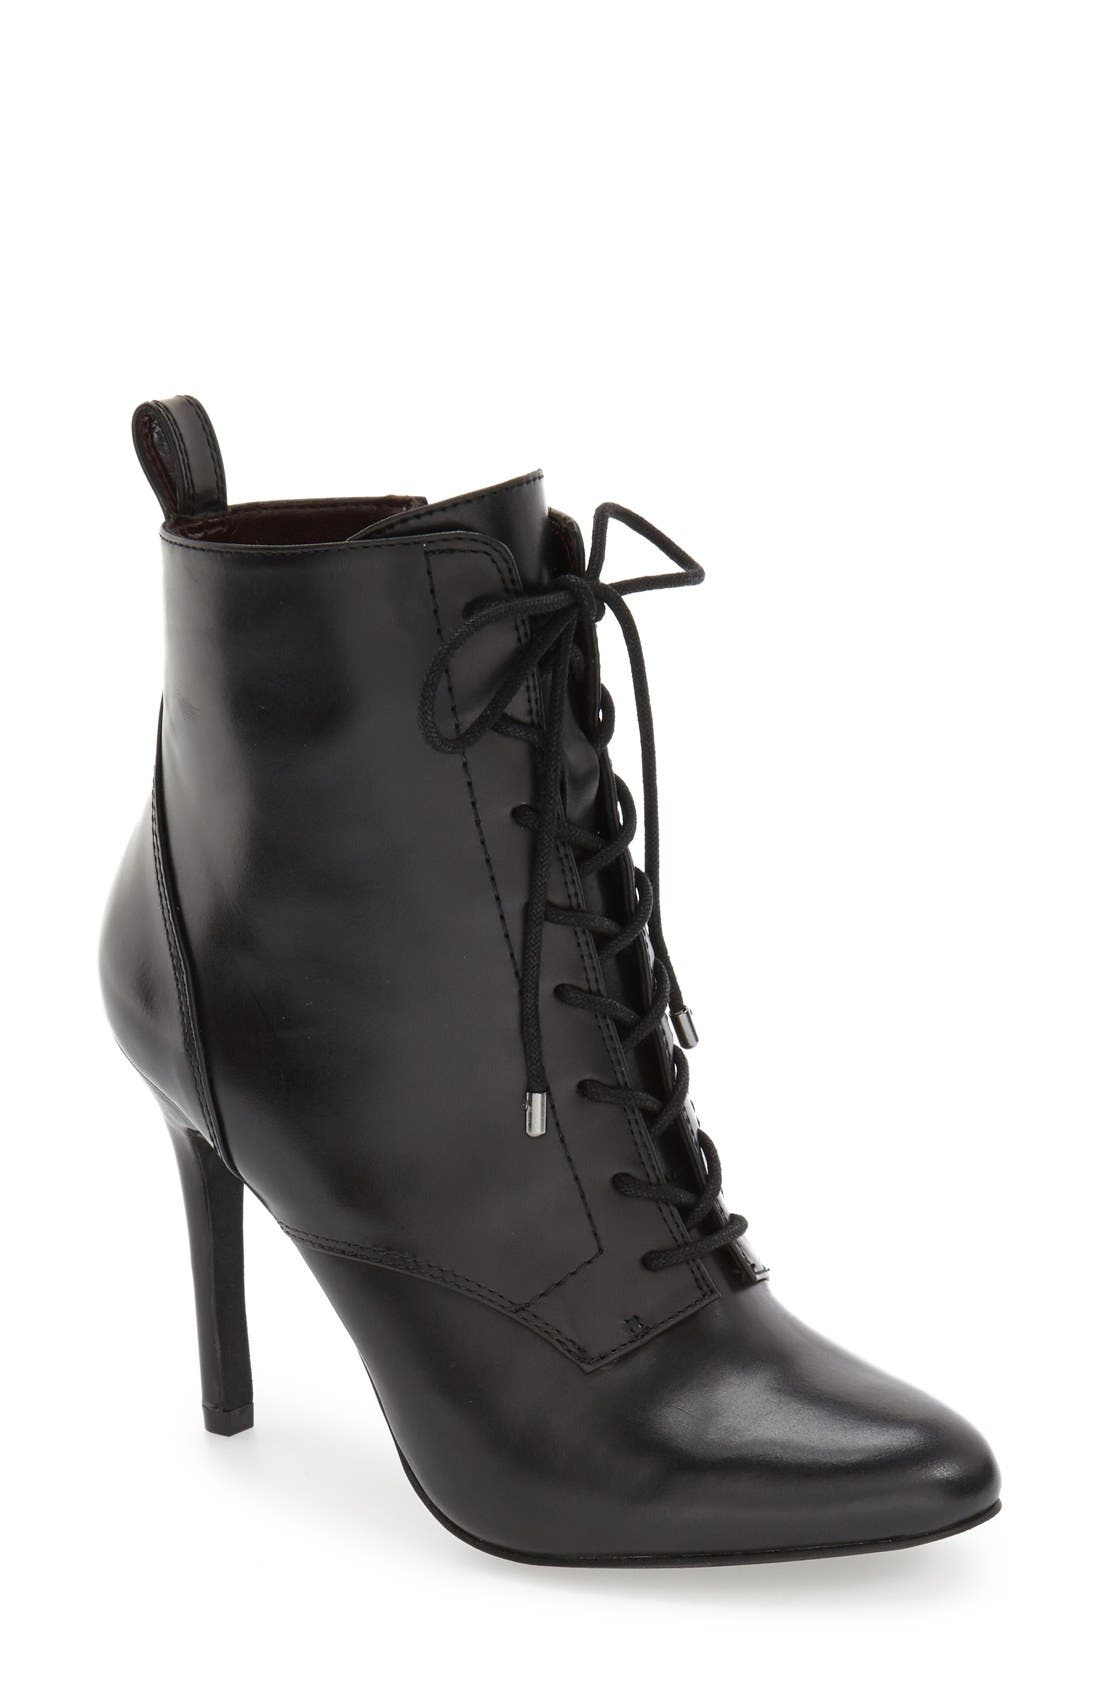 Main Image - BCBGeneration 'Banx' Lace-Up Bootie (Women)